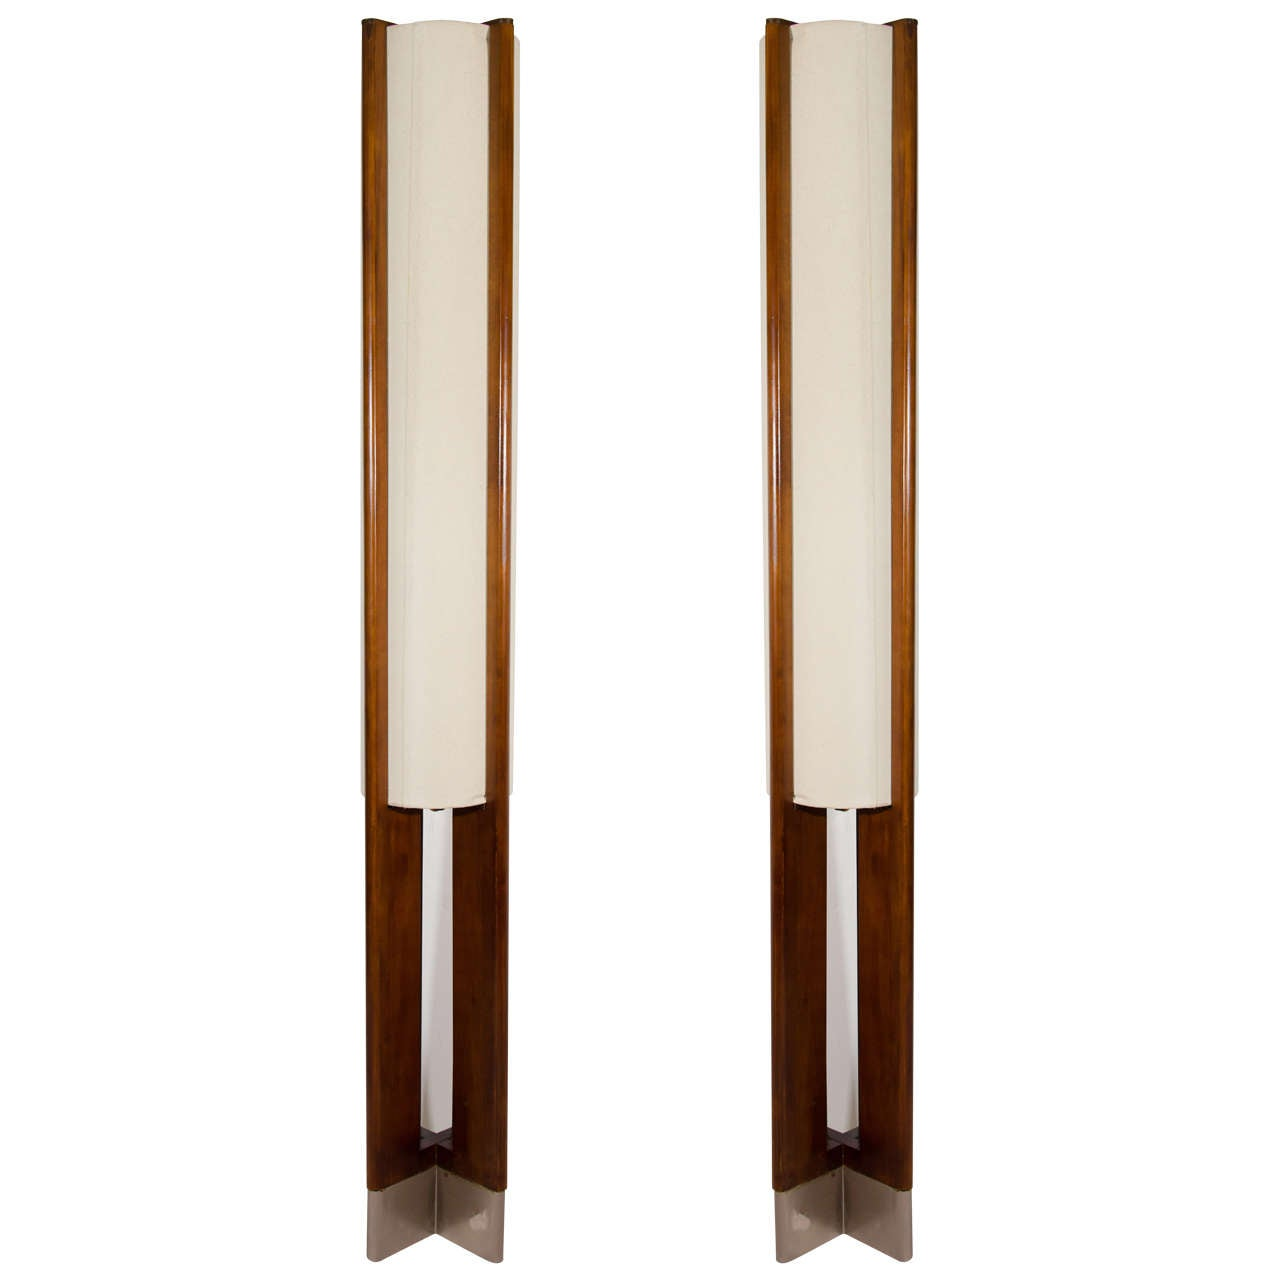 Danish Modern Pair Of Tall Wooden Floor Lamps At 1stdibs